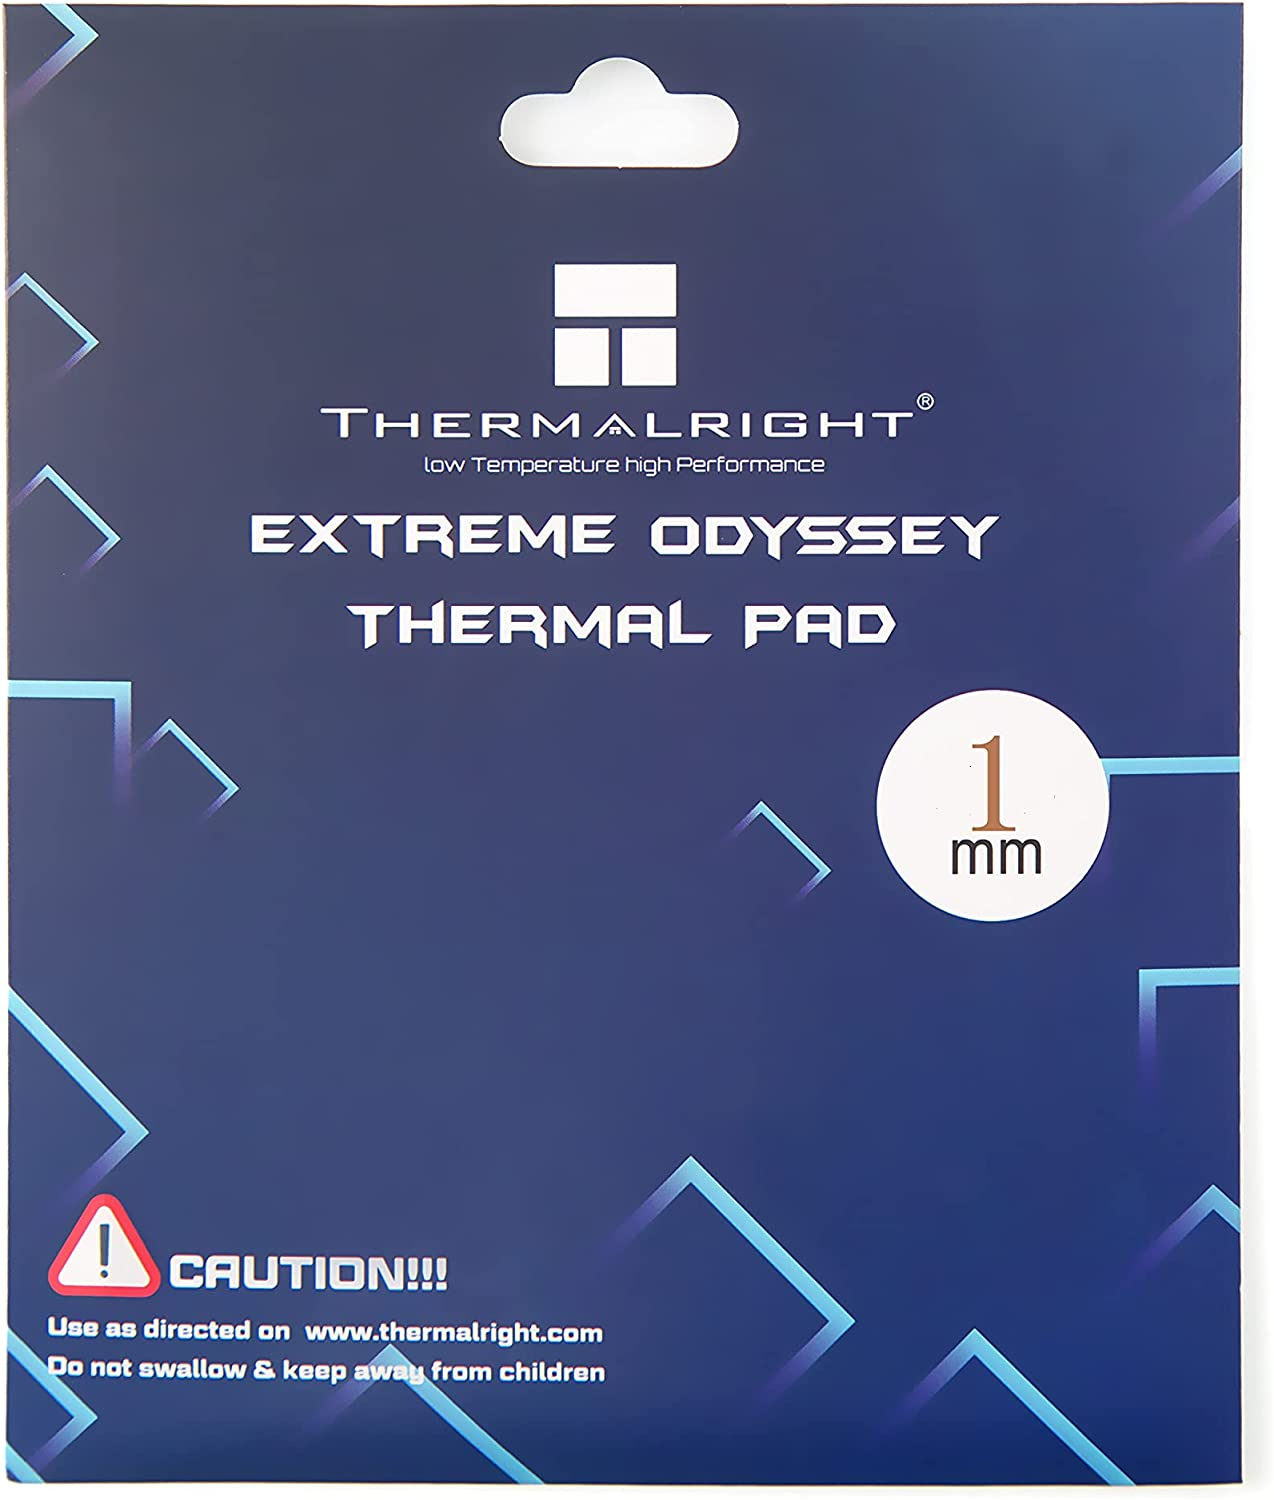 Thermalright Odyssey Thermal Pad 12.8 W/mK, 120x120x1mm, Heat Resistance, High-Temperature Resistance, Non-Conductive, Silicone Thermal Pads for Laptop Heatsink/GPU/CPU/LED/Gelid/PS4(120x120x1mm)